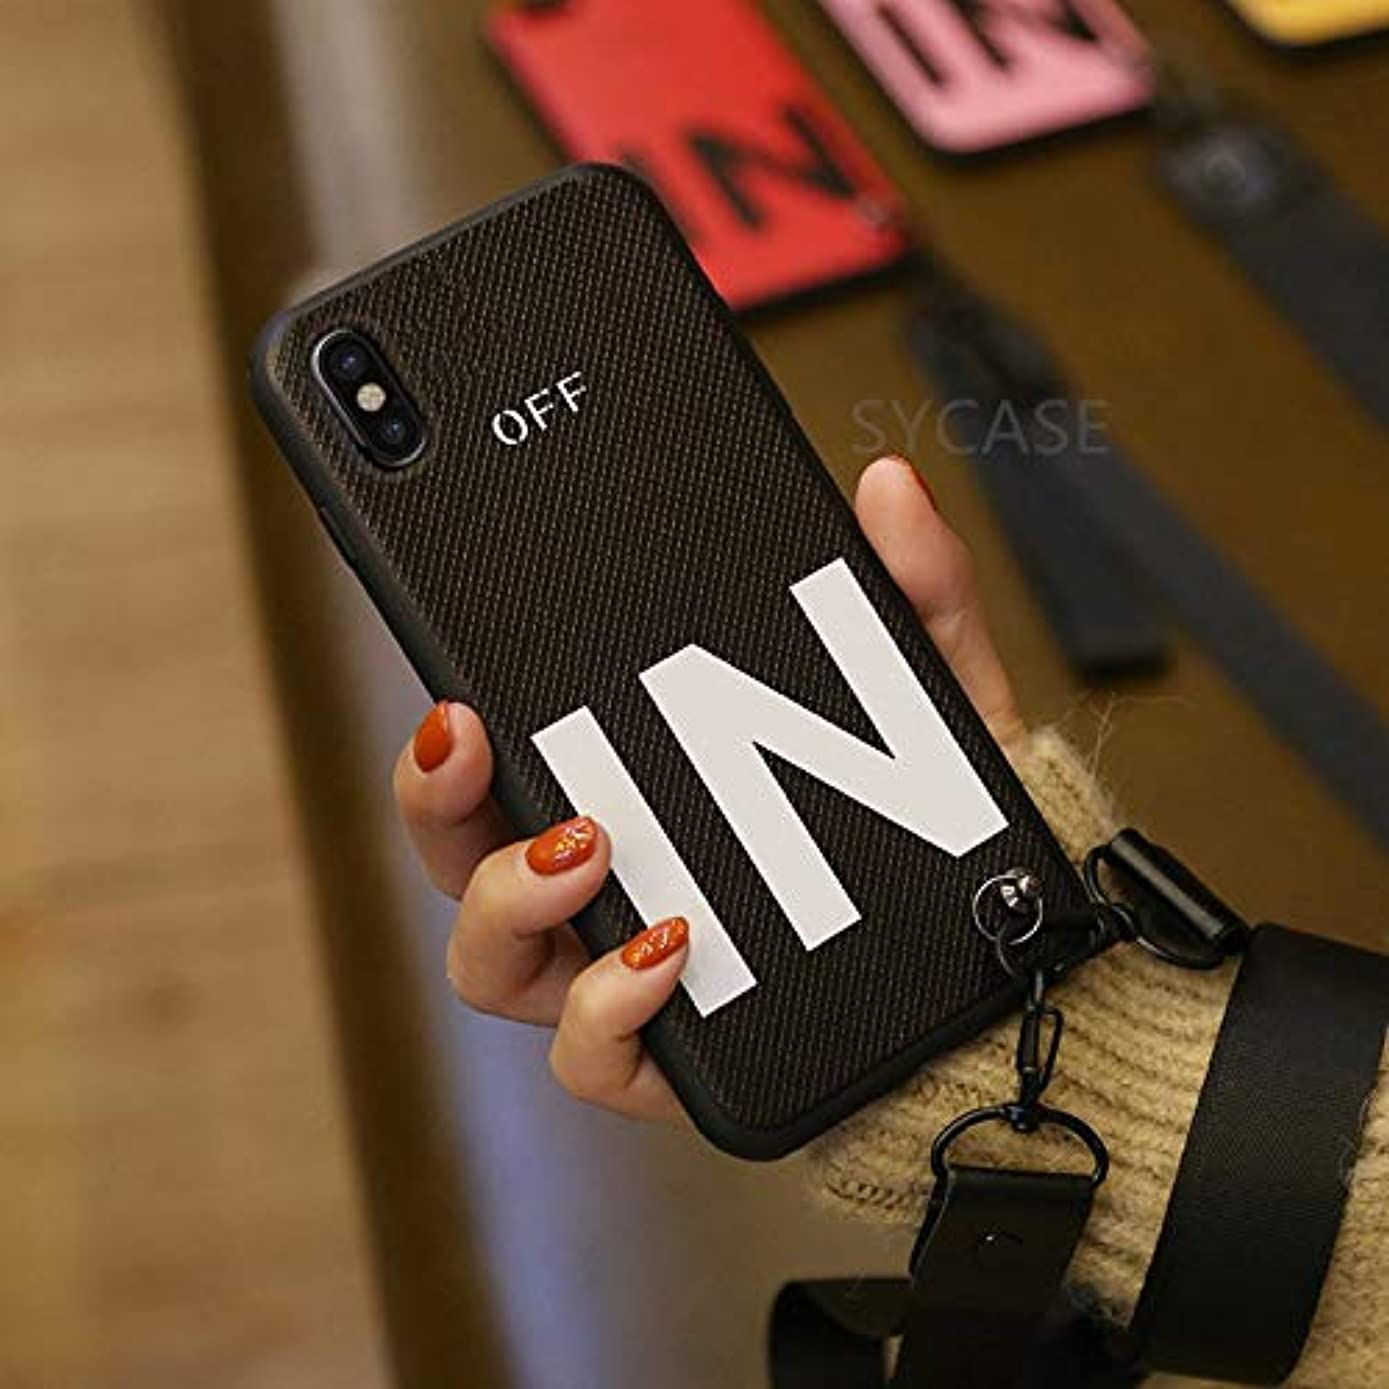 Fitted Cases - Hot Popular Fashion in Letters Hand Strap Lanyard Phone case for iPhone X XR Xs Max 6 6S 7 8 Plus Soft Silicon Back Cover - by John_Kendy - 1 PCs